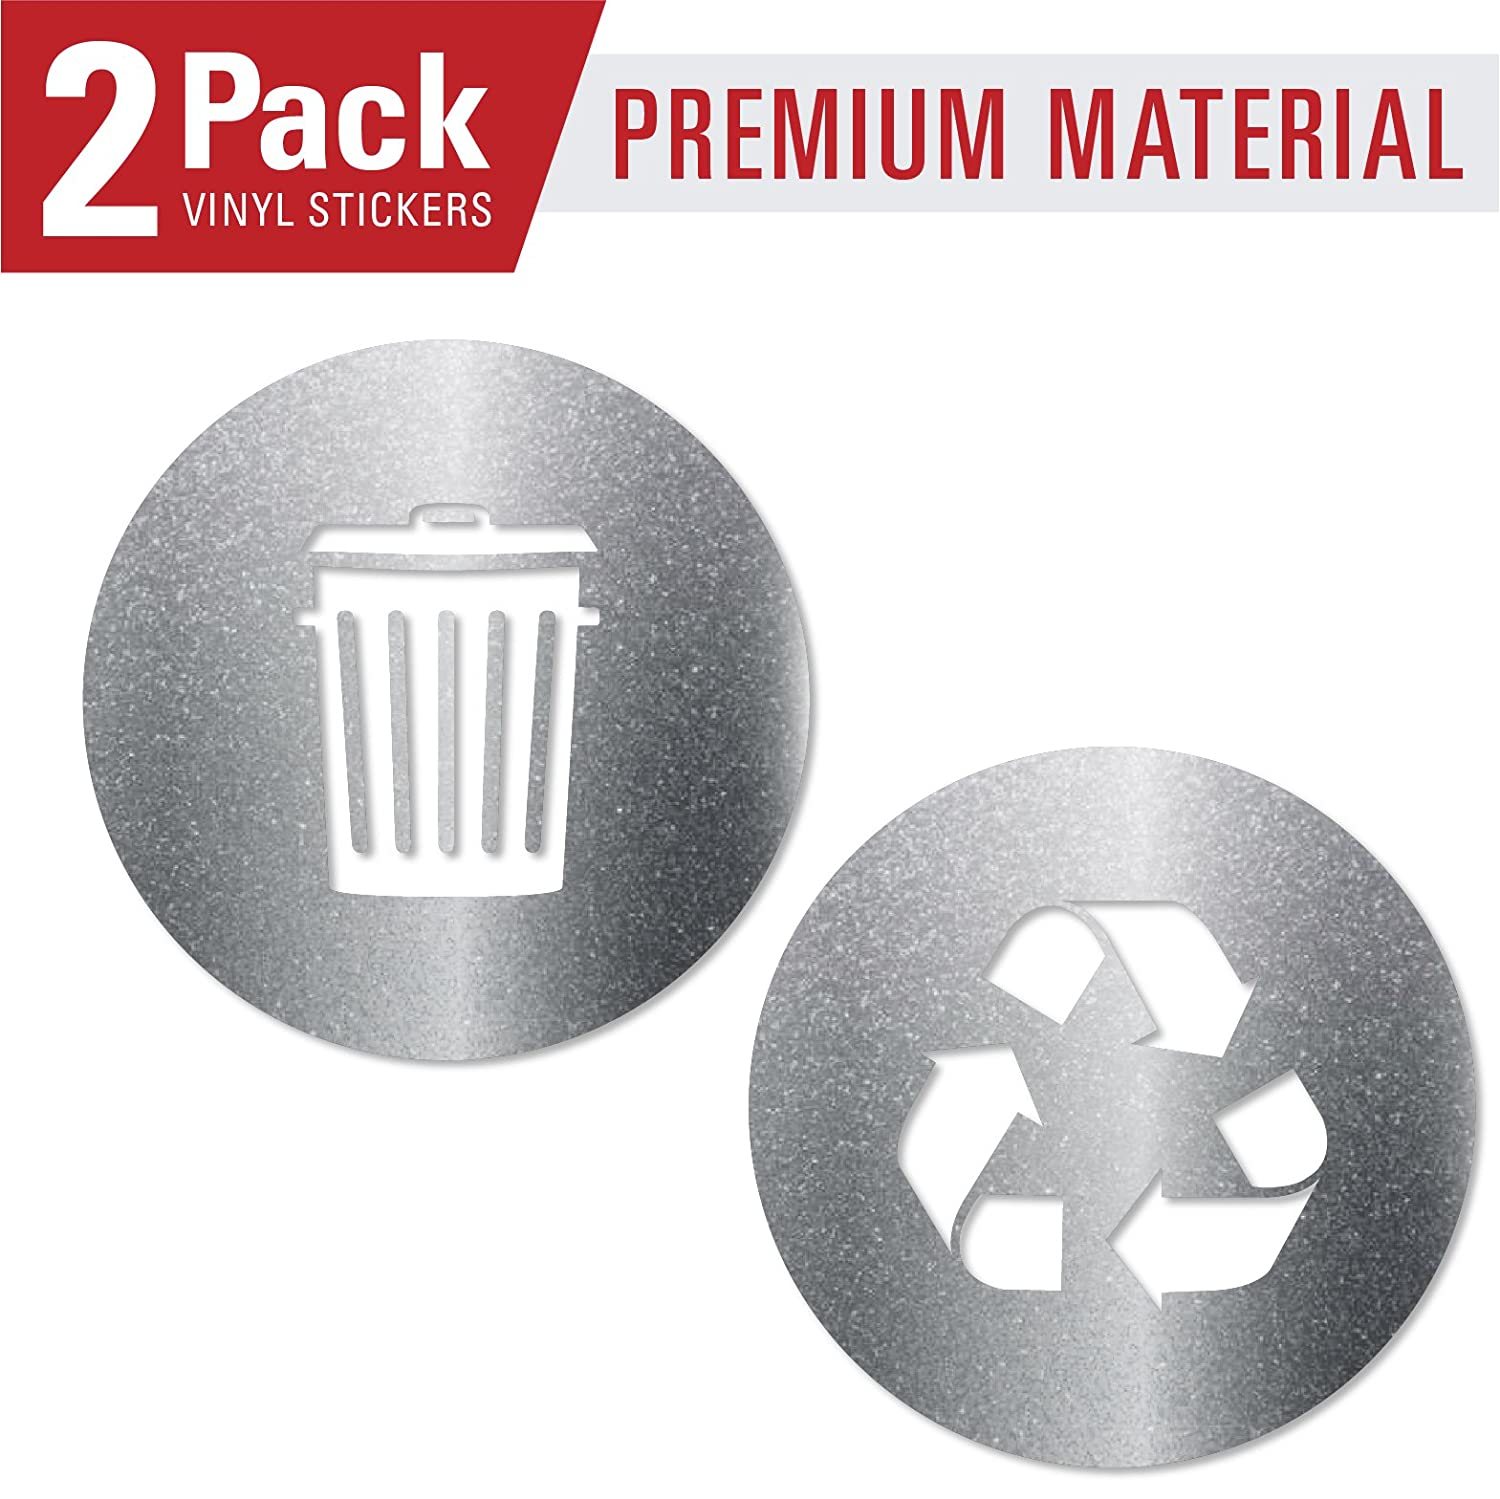 Recycle and trash sticker vinyl modern logo 2 75 x 2 75 1 ea symbol to organize trash cans or garbage containers and walls xsmall ultra metallic